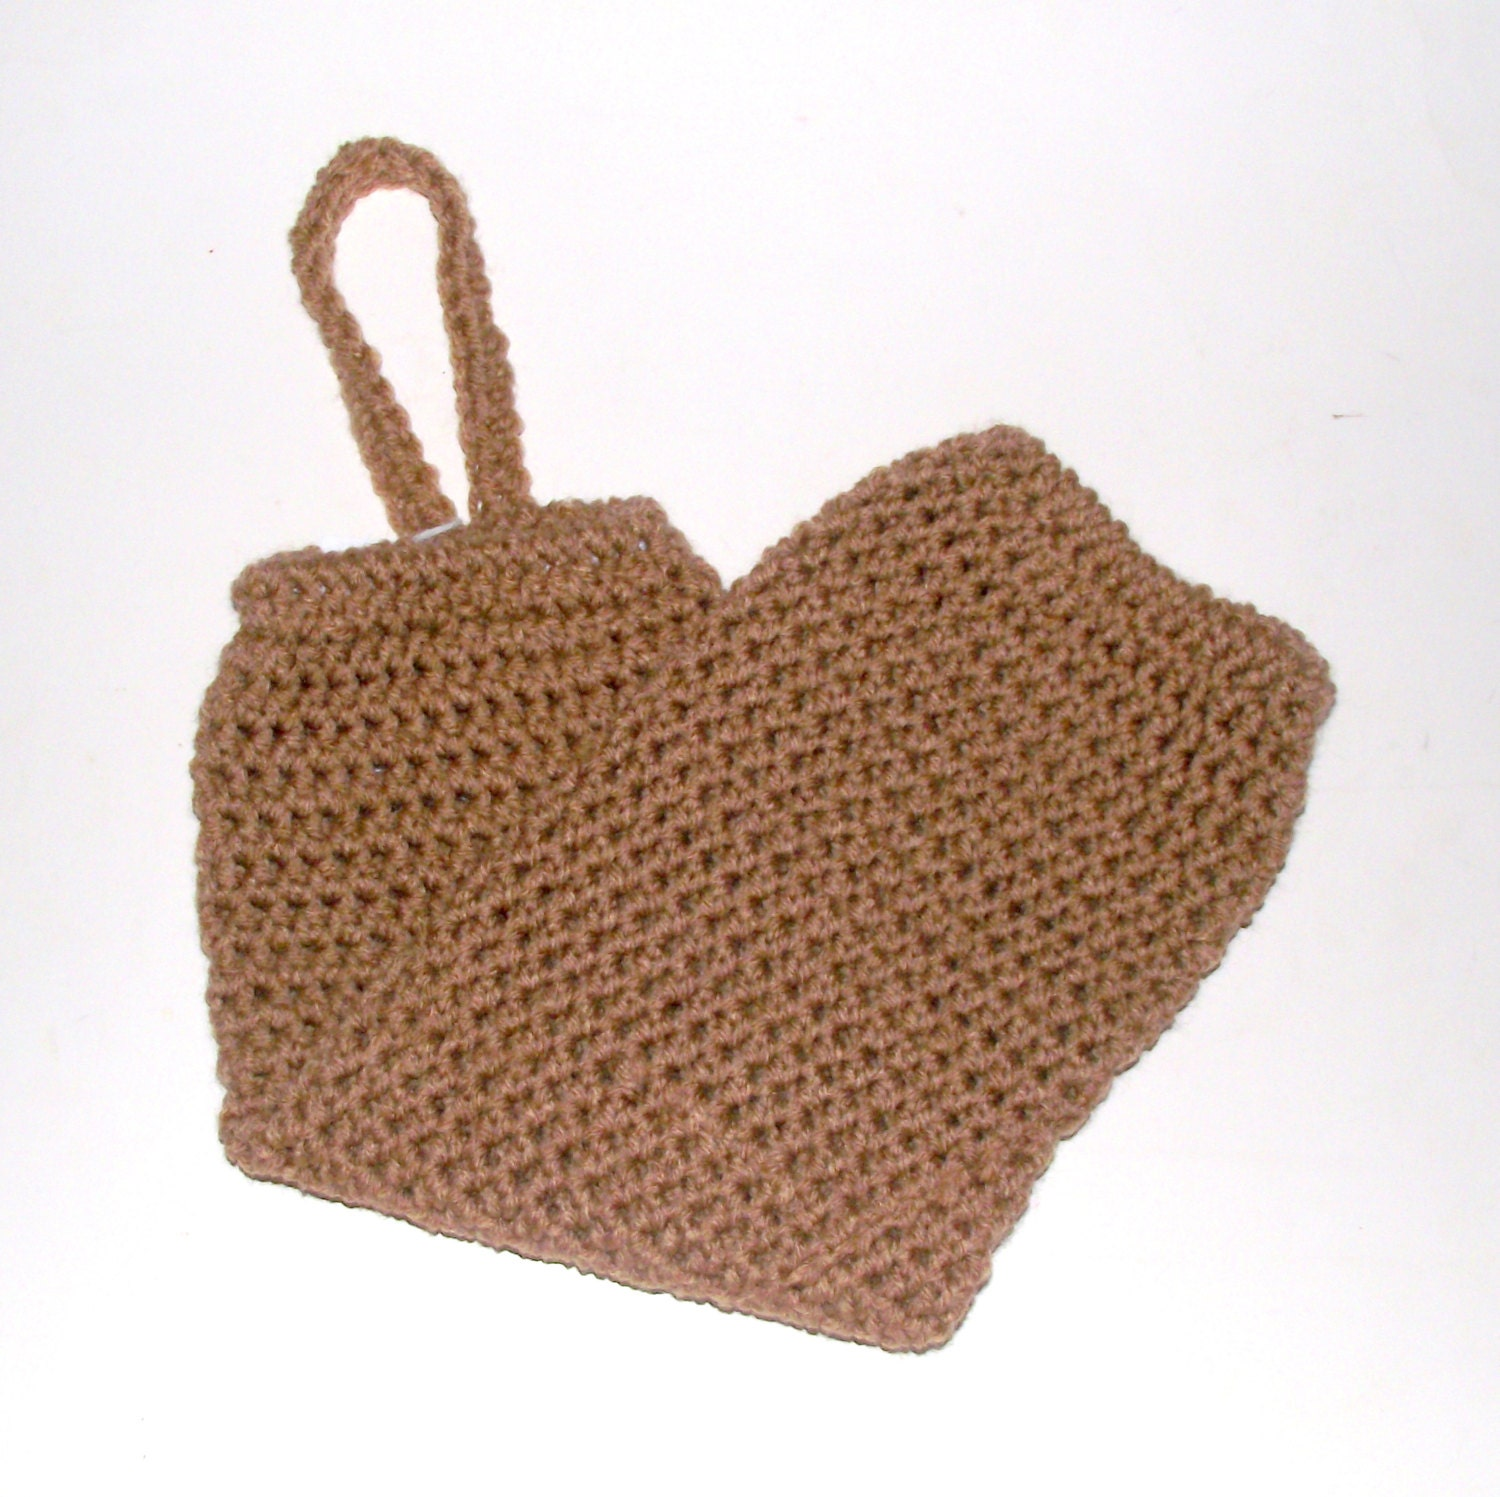 Crochet Grocery Bag : Warm Brown Plastic Bag Rag Holder Crochet by CreationsByDeAnn